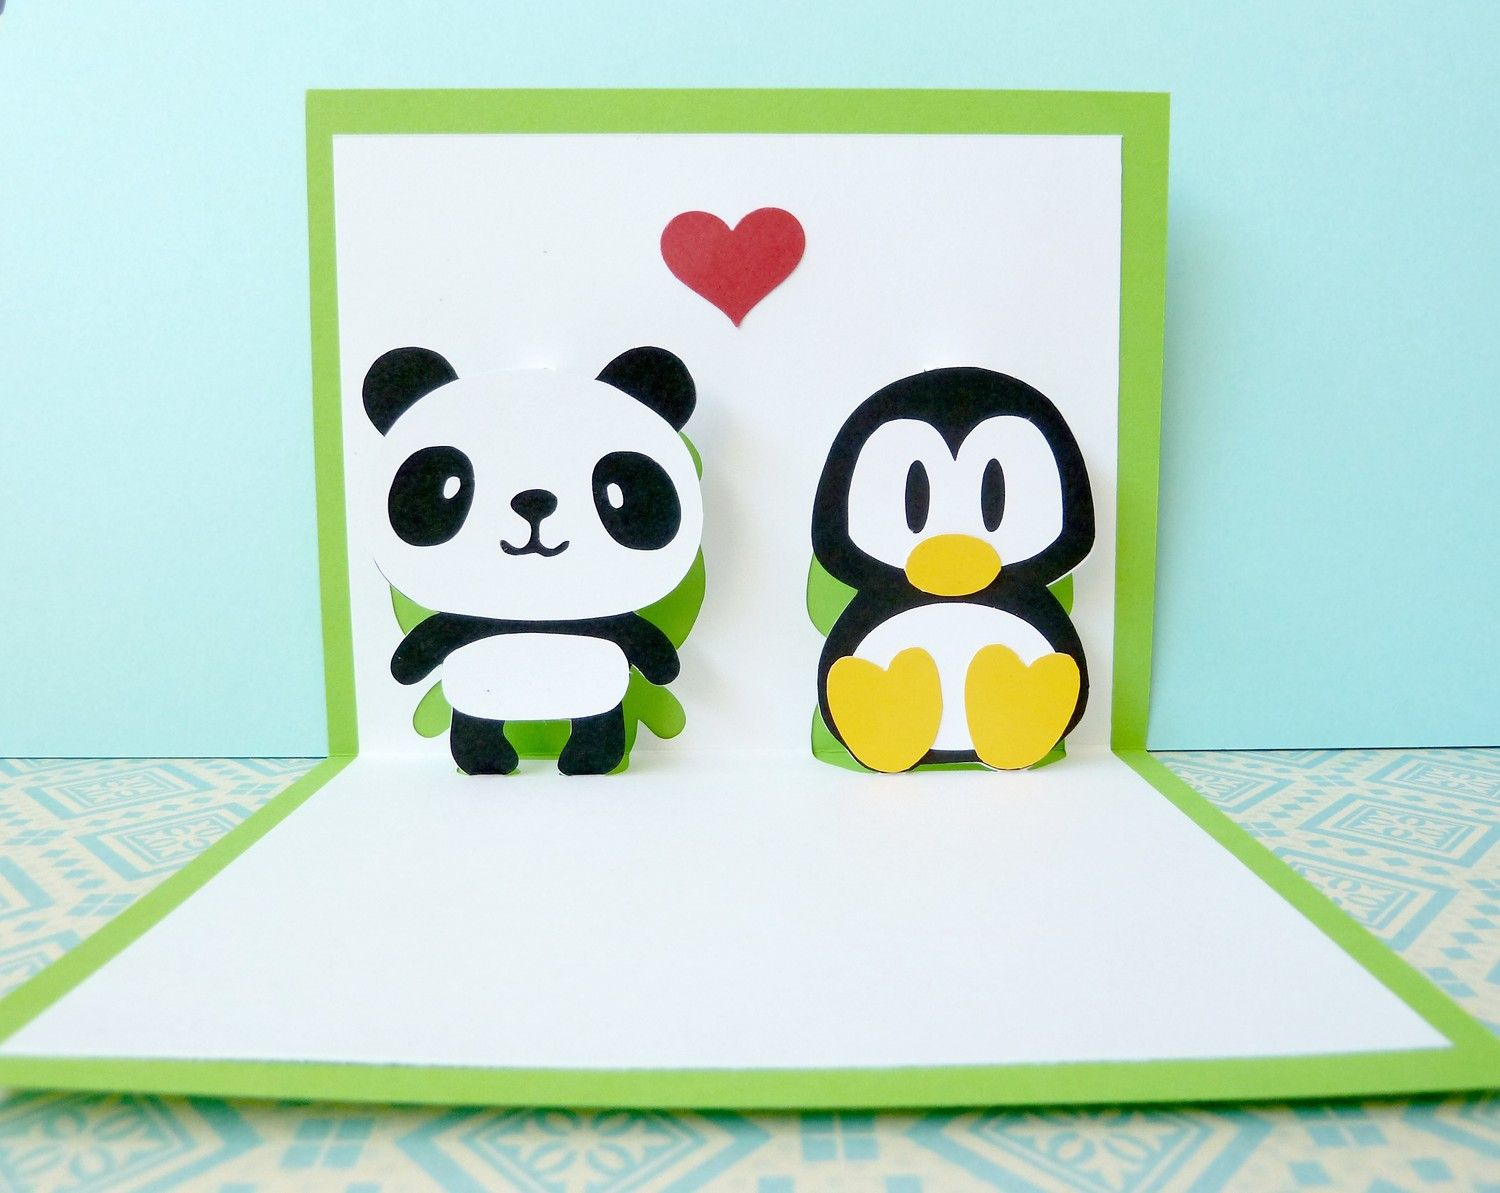 Panda And Penguin In Love Pop Up Card 8 85 Via Etsy Card Ideas